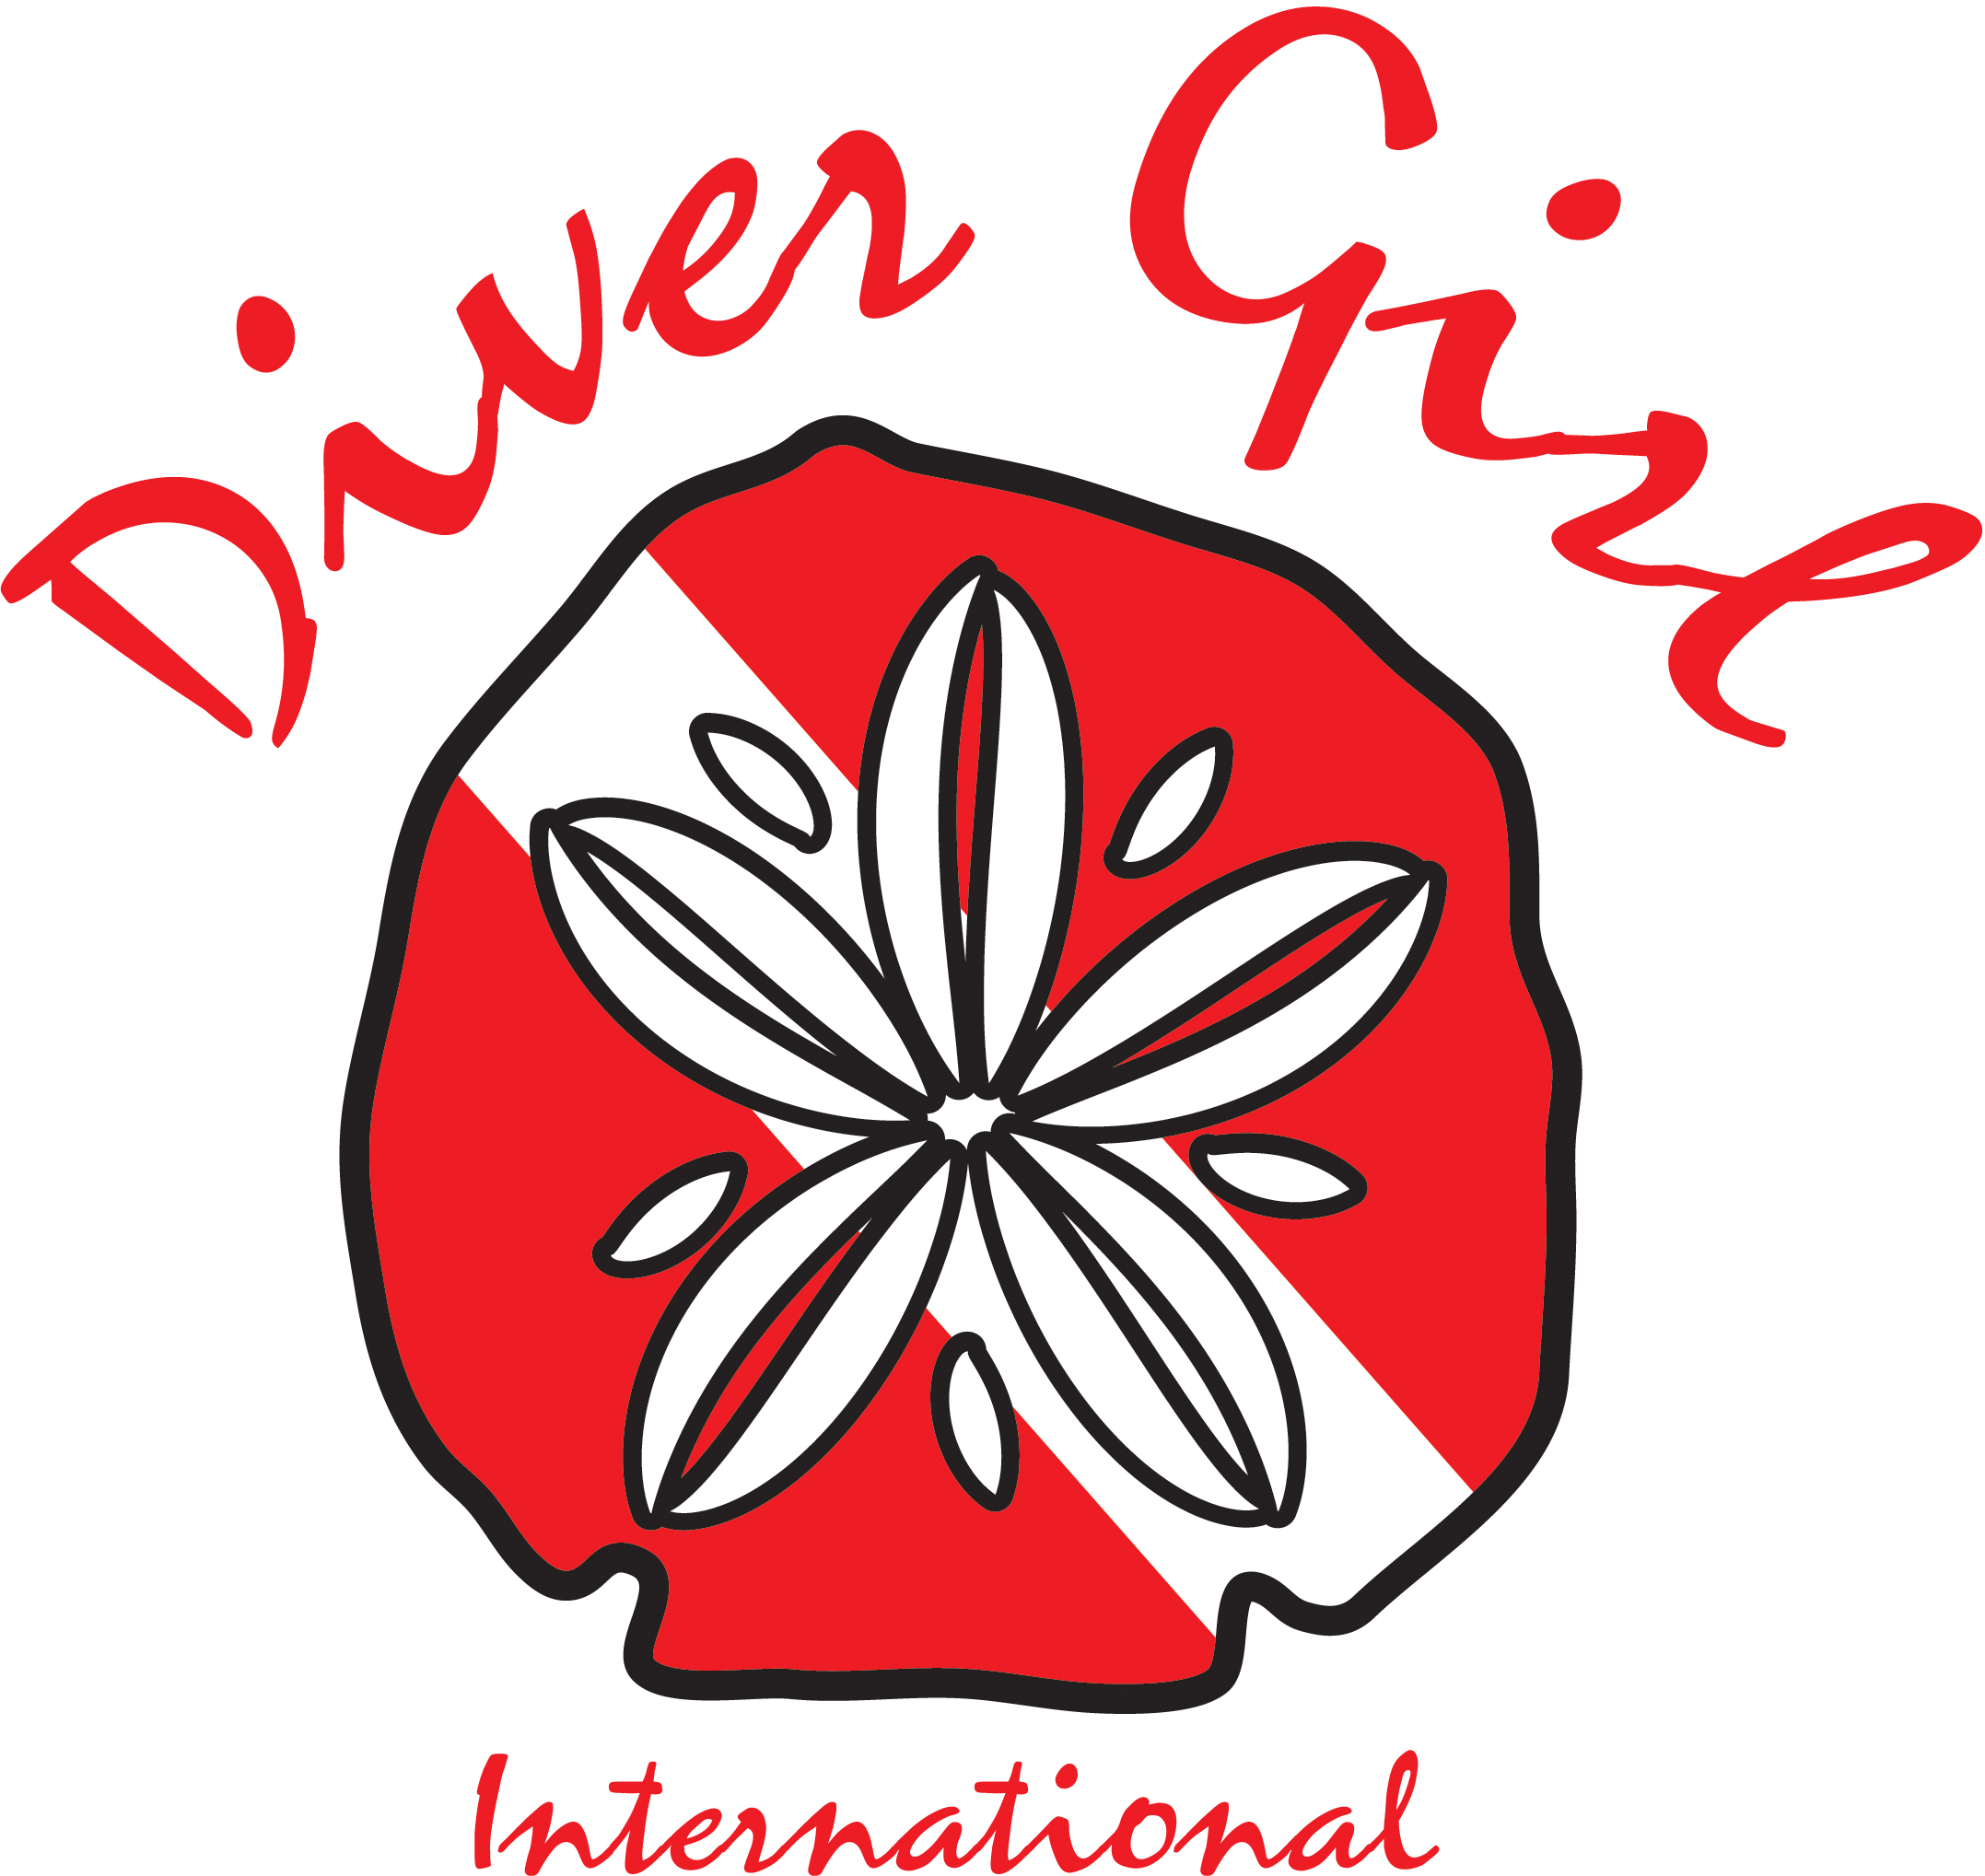 DIVER GIRL INTERNATIONAL